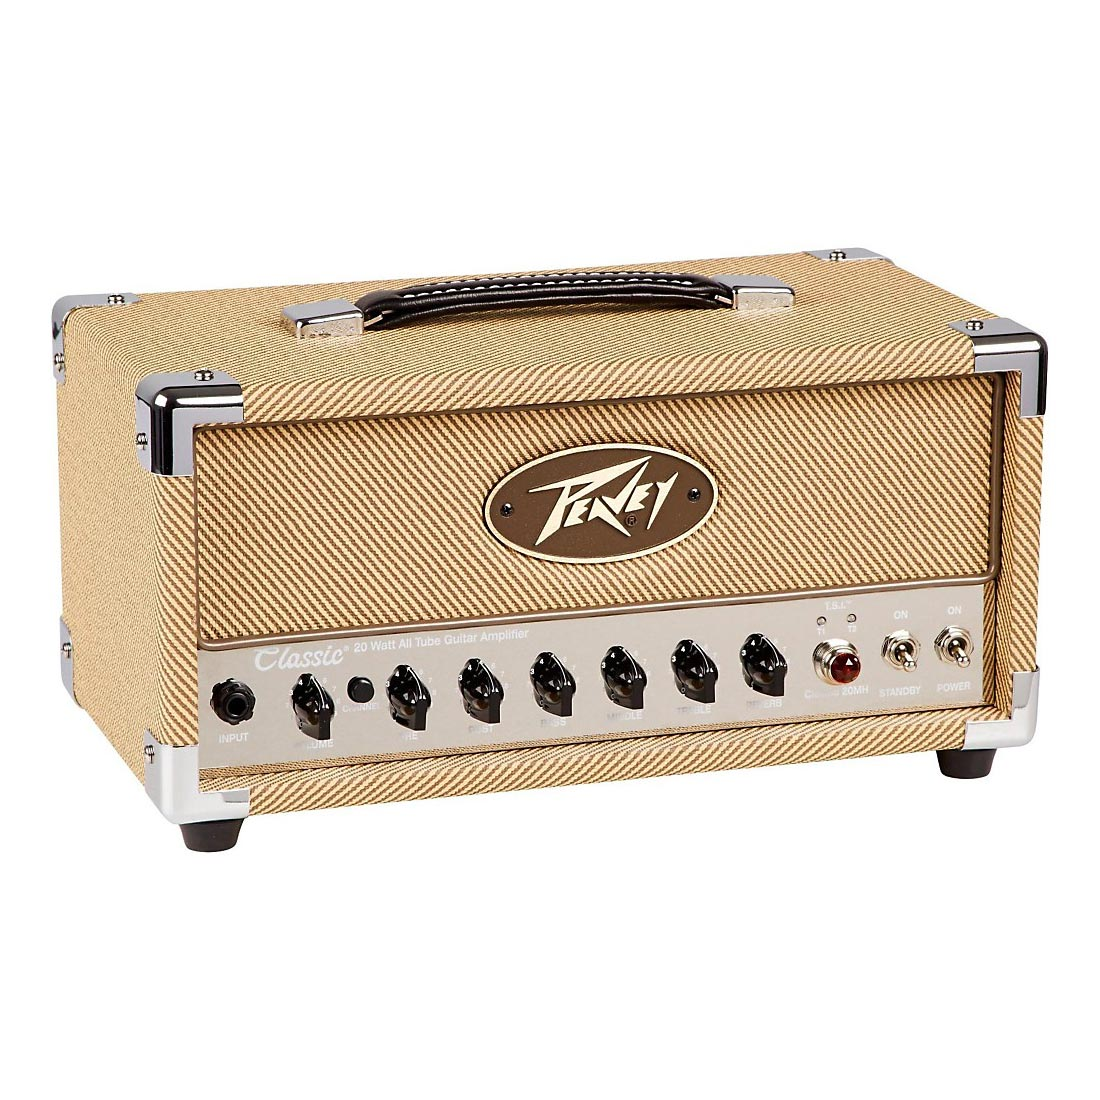 Peavey Classic 20 Mini Head - Cabezal válvulas mini guitarra